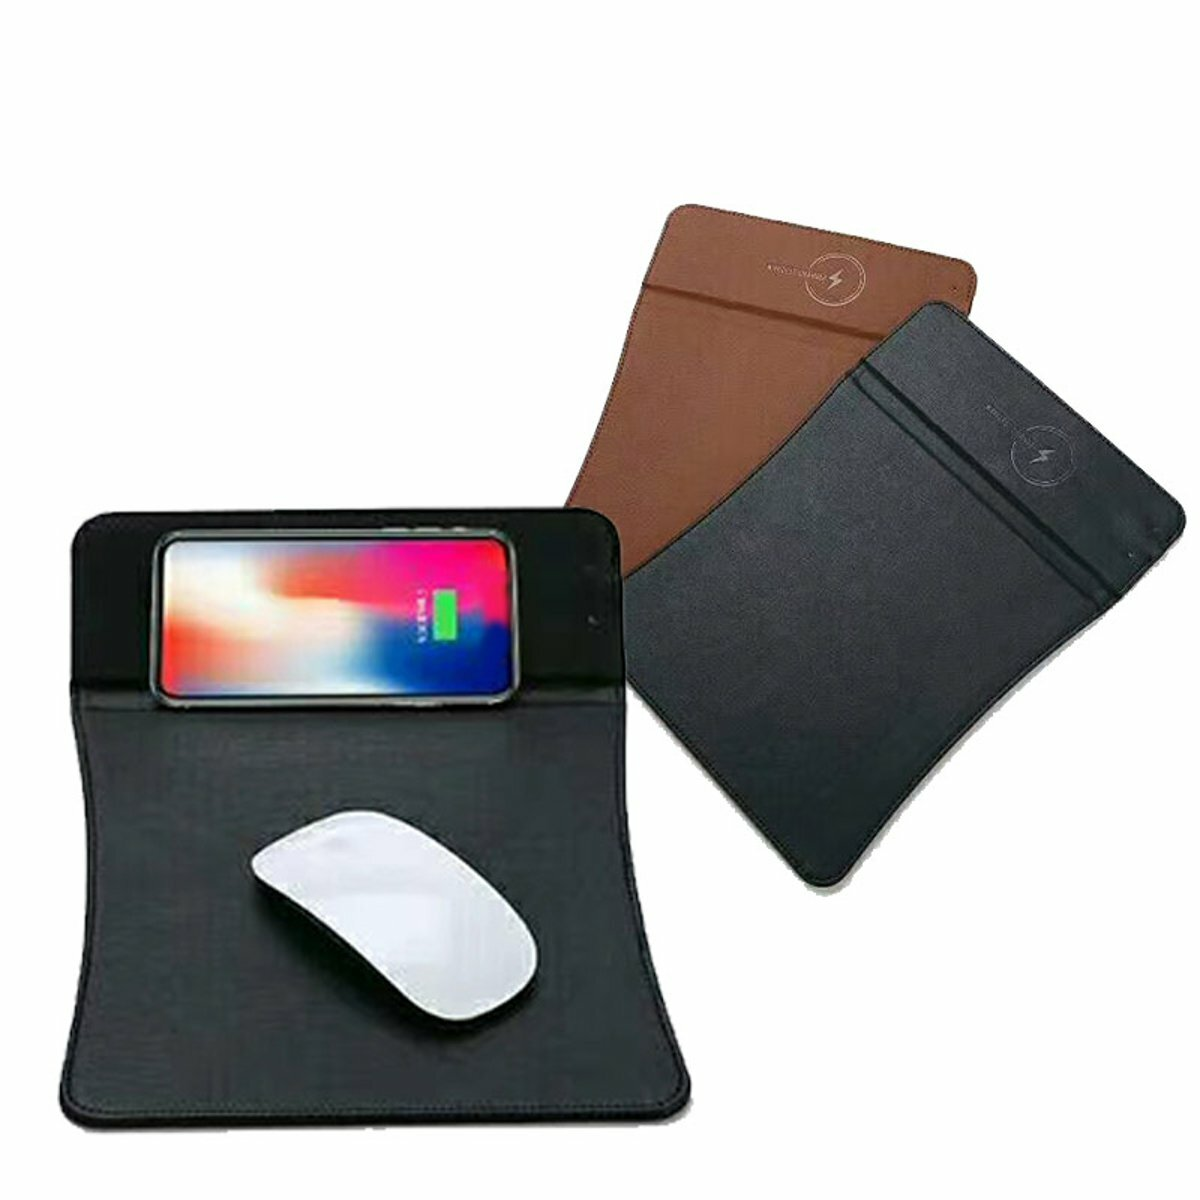 Qi Wireless Fast Charging Mouse Pad For iPhone X/8/8 Plus/Samsung Galaxy S9/S9 Plus/Note 8/Huawei